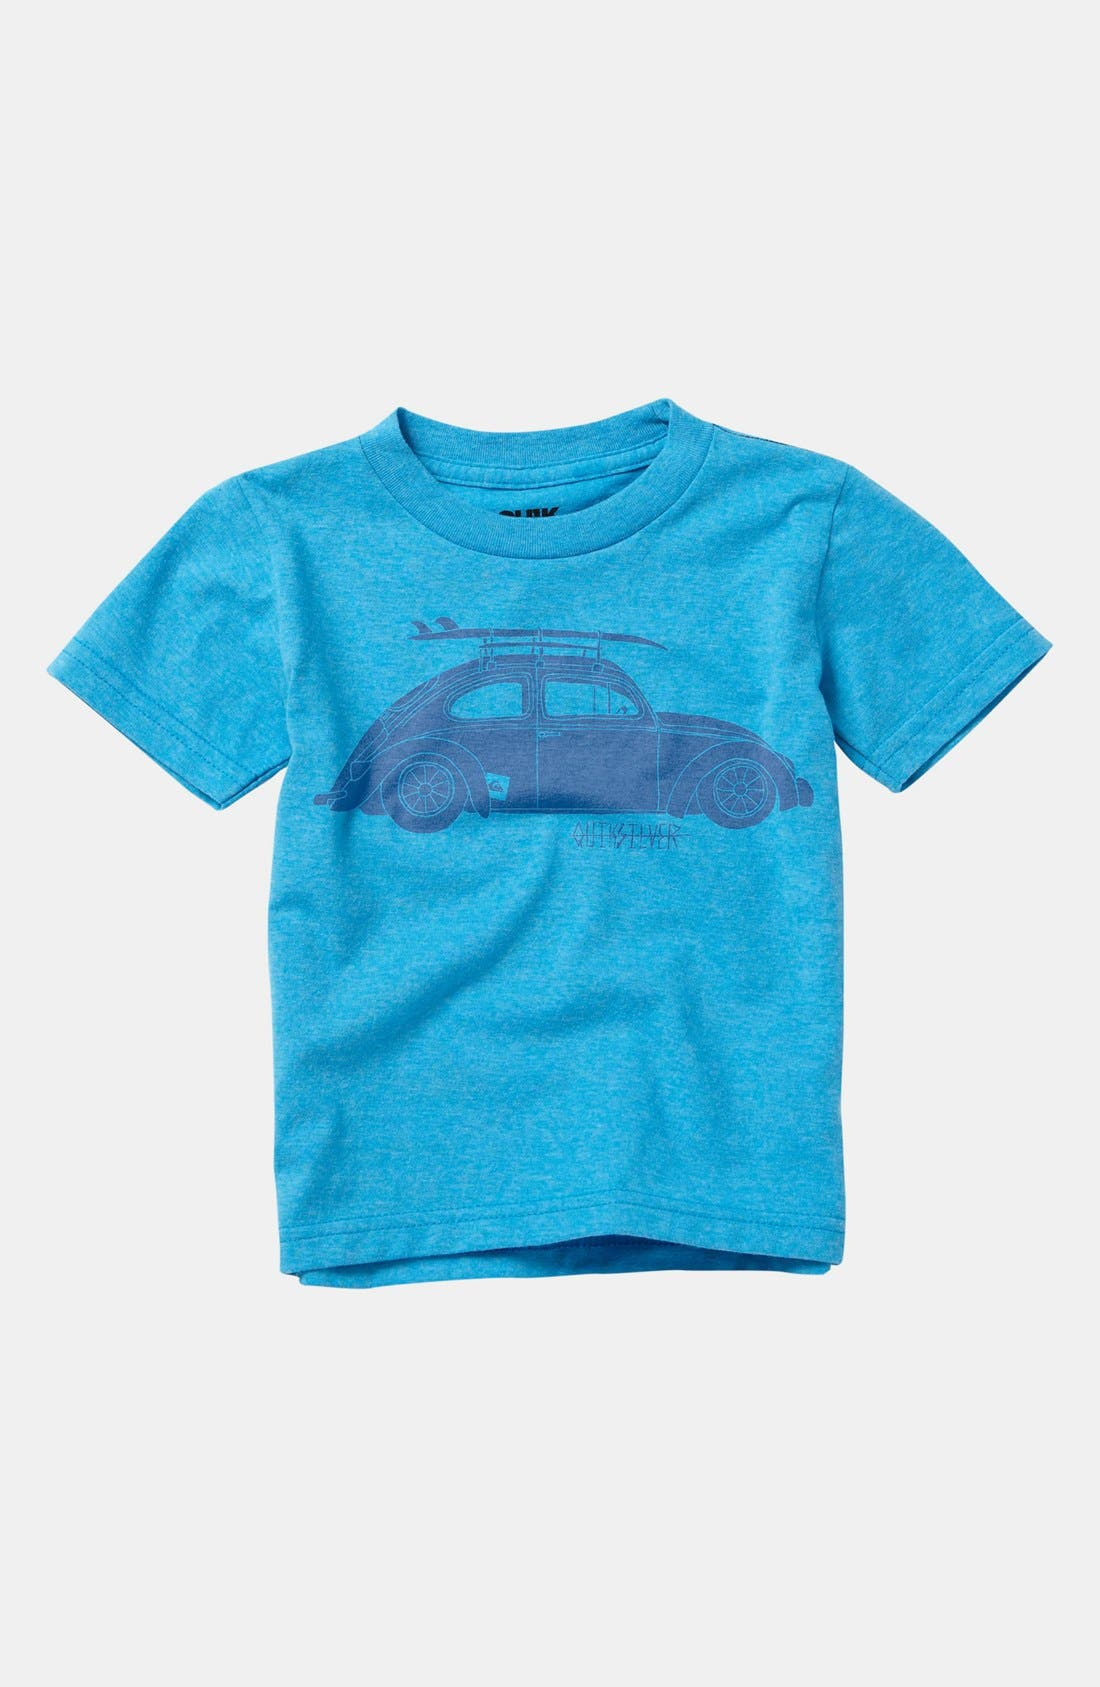 Alternate Image 1 Selected - Quiksilver 'Bugged Out' T-Shirt (Baby)